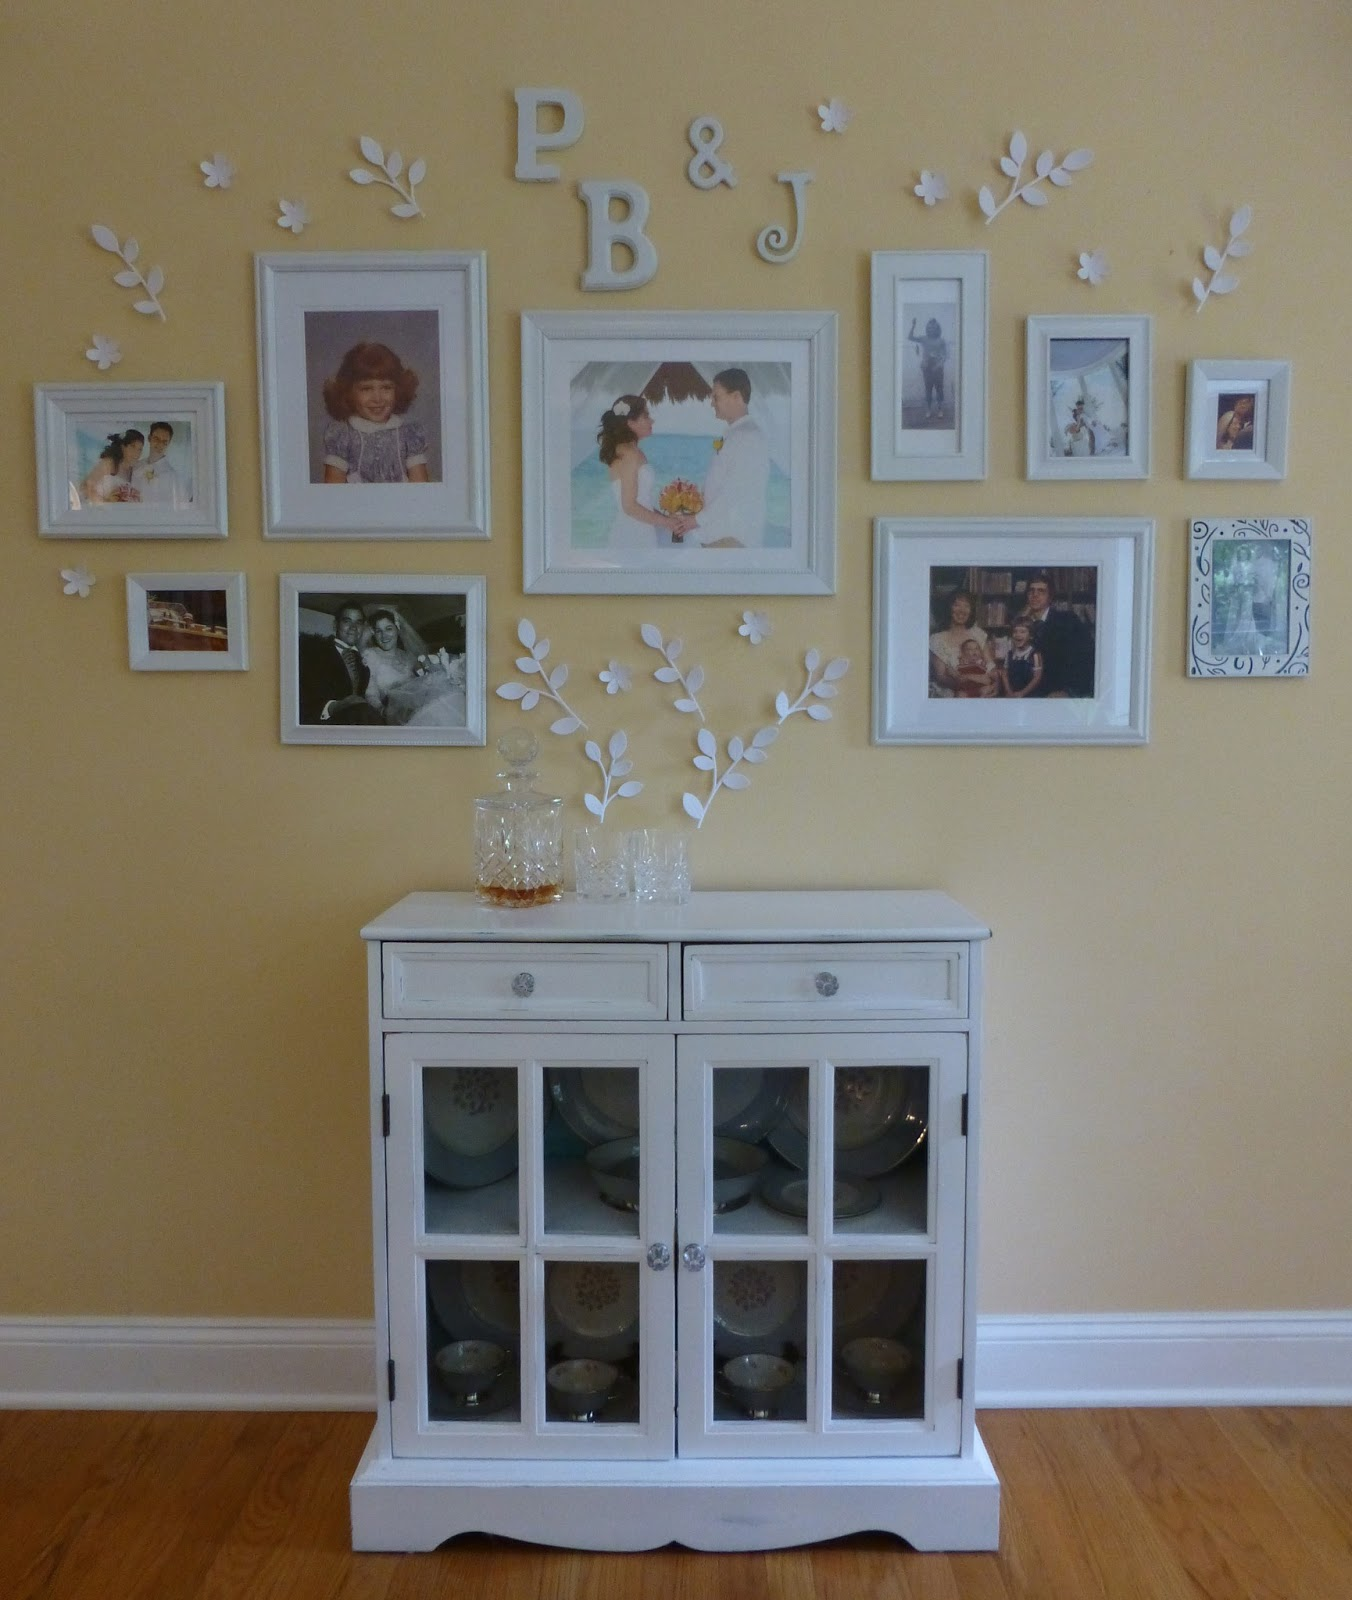 Family picture wall arrangements submited images pic2fly - Picture arrangements on walls ...